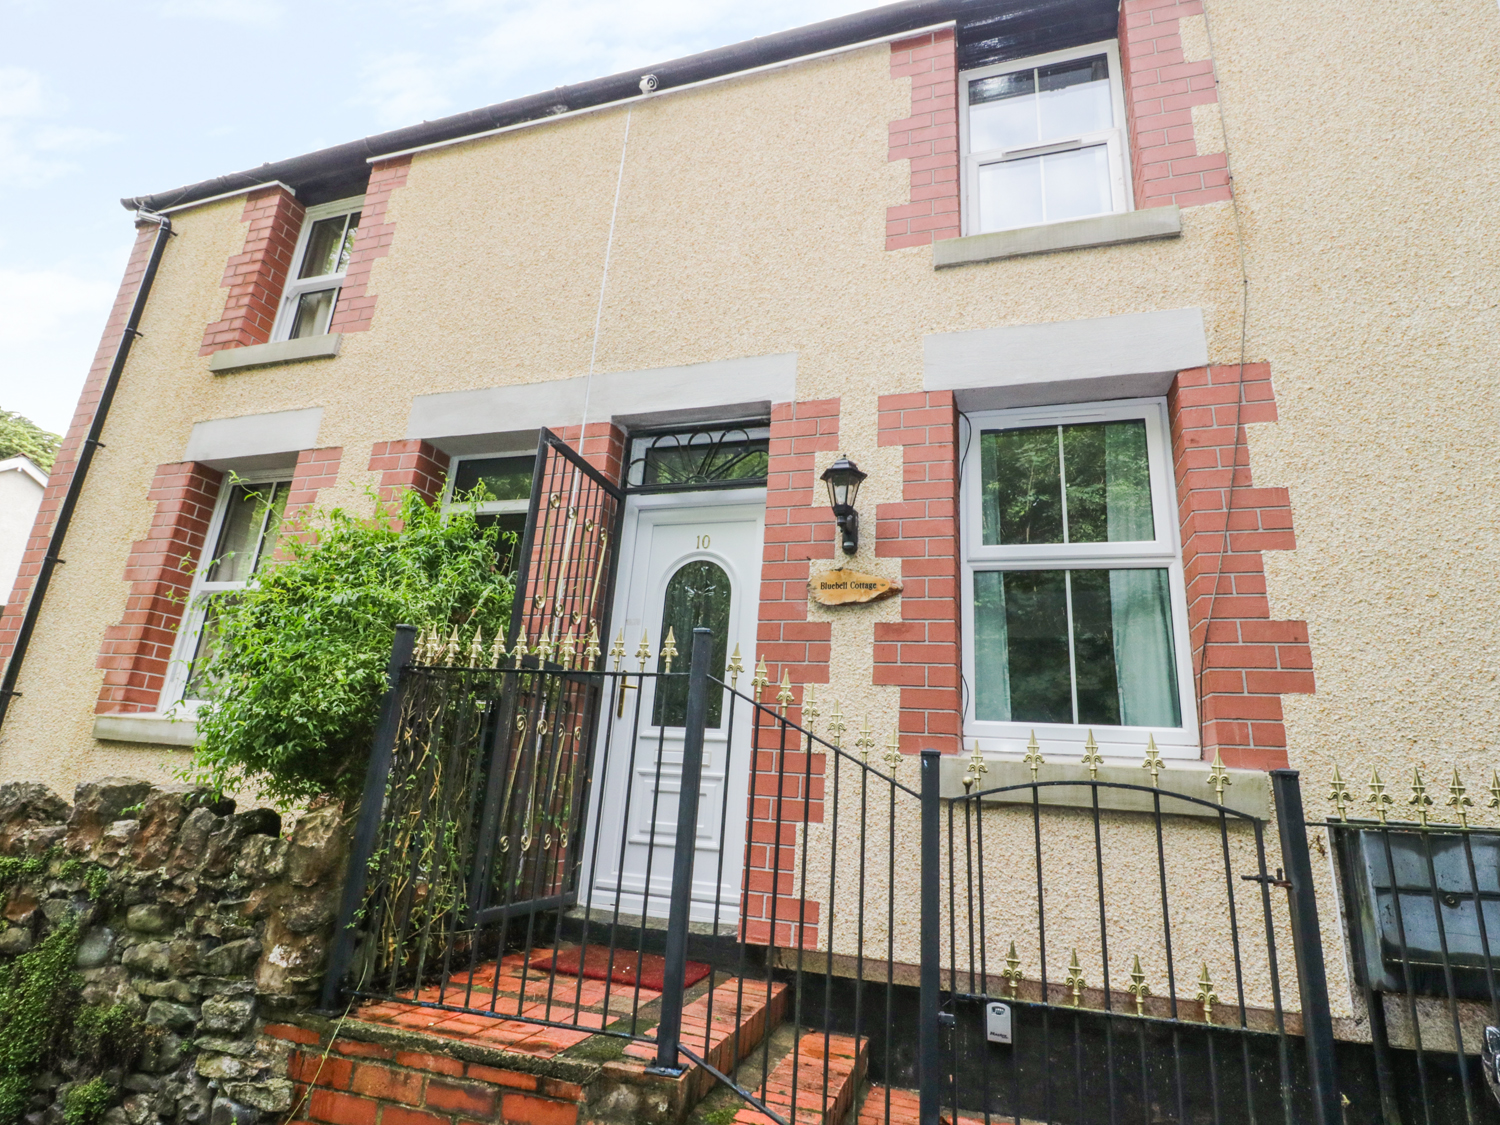 2 bedroom Cottage for rent in Colwyn Bay